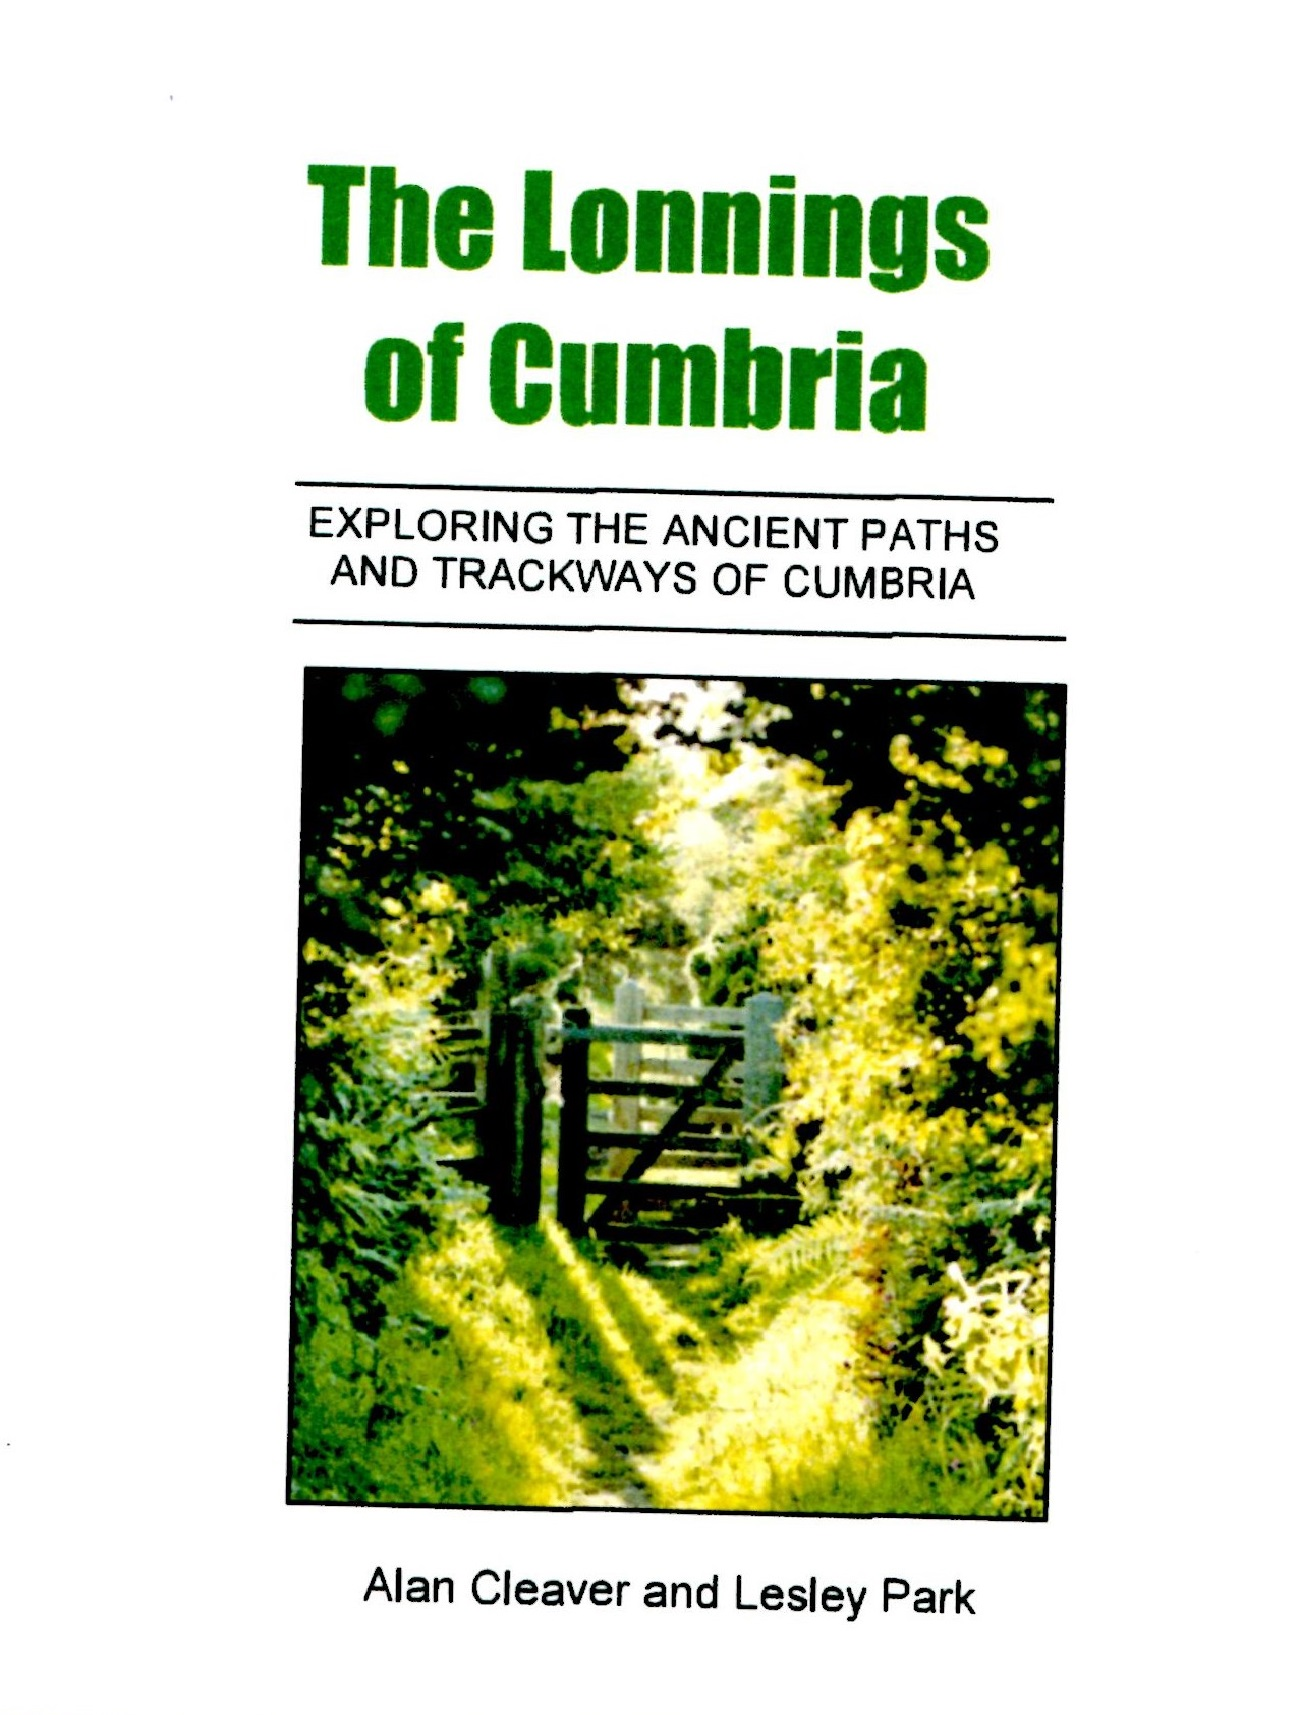 The Lonnings of Cumbria